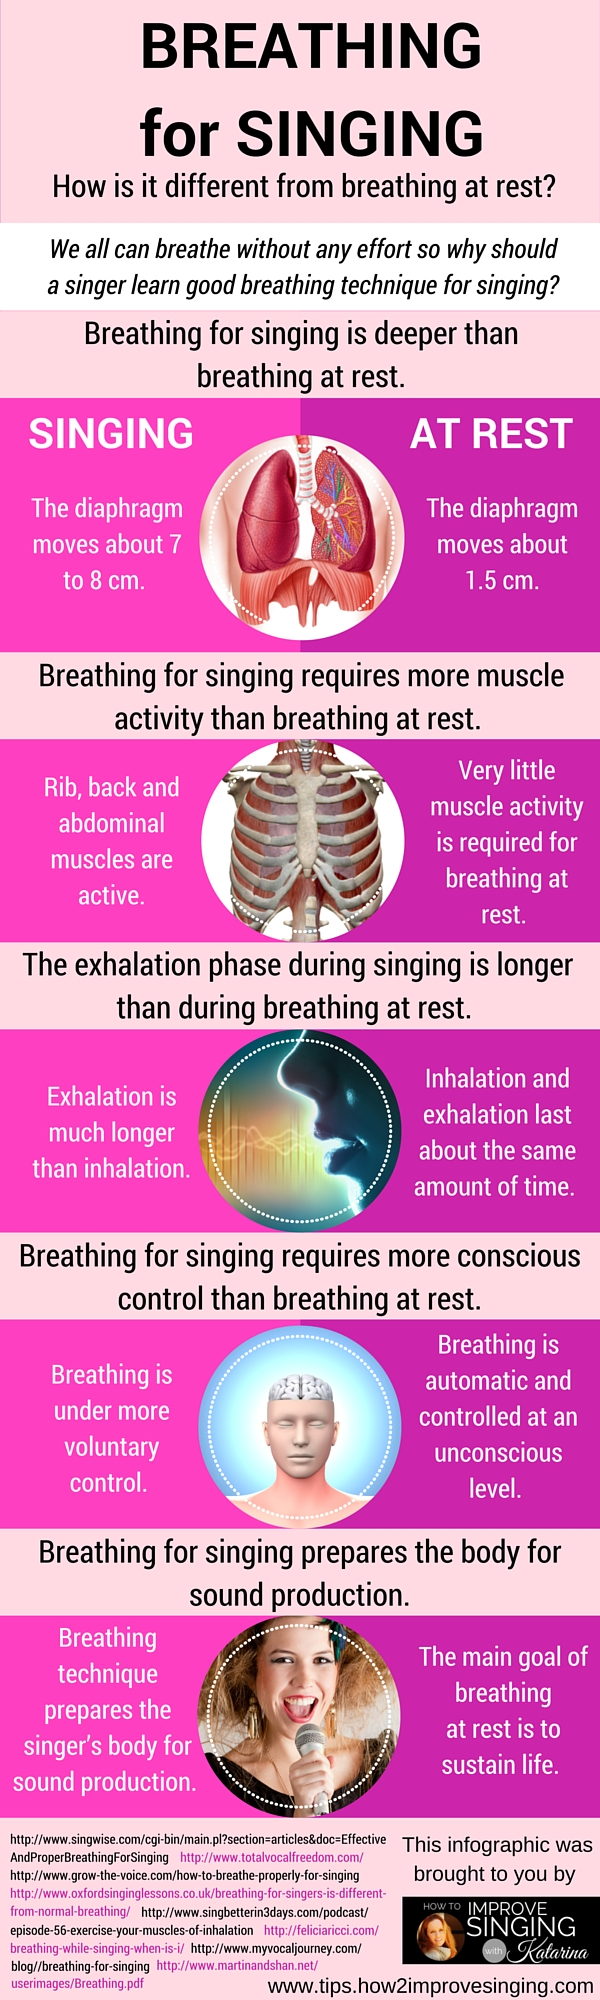 breathing for singing how is it different infographic